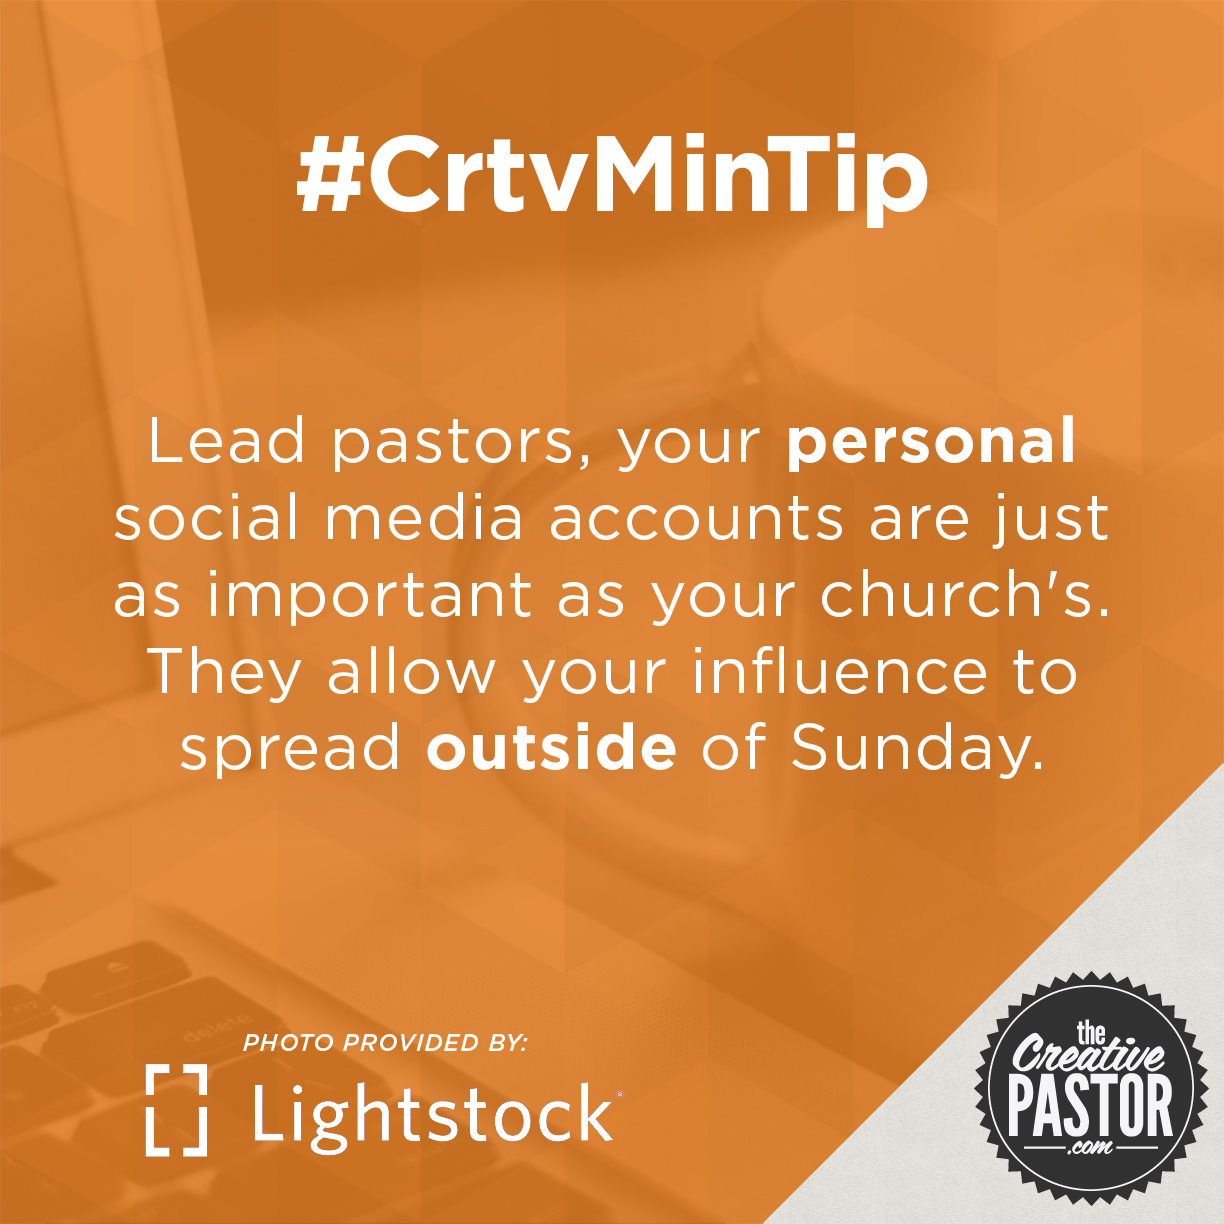 Lead pastors, your personal social media accounts are just as important as your church's. They allow your influence to spread outside of Sunday.